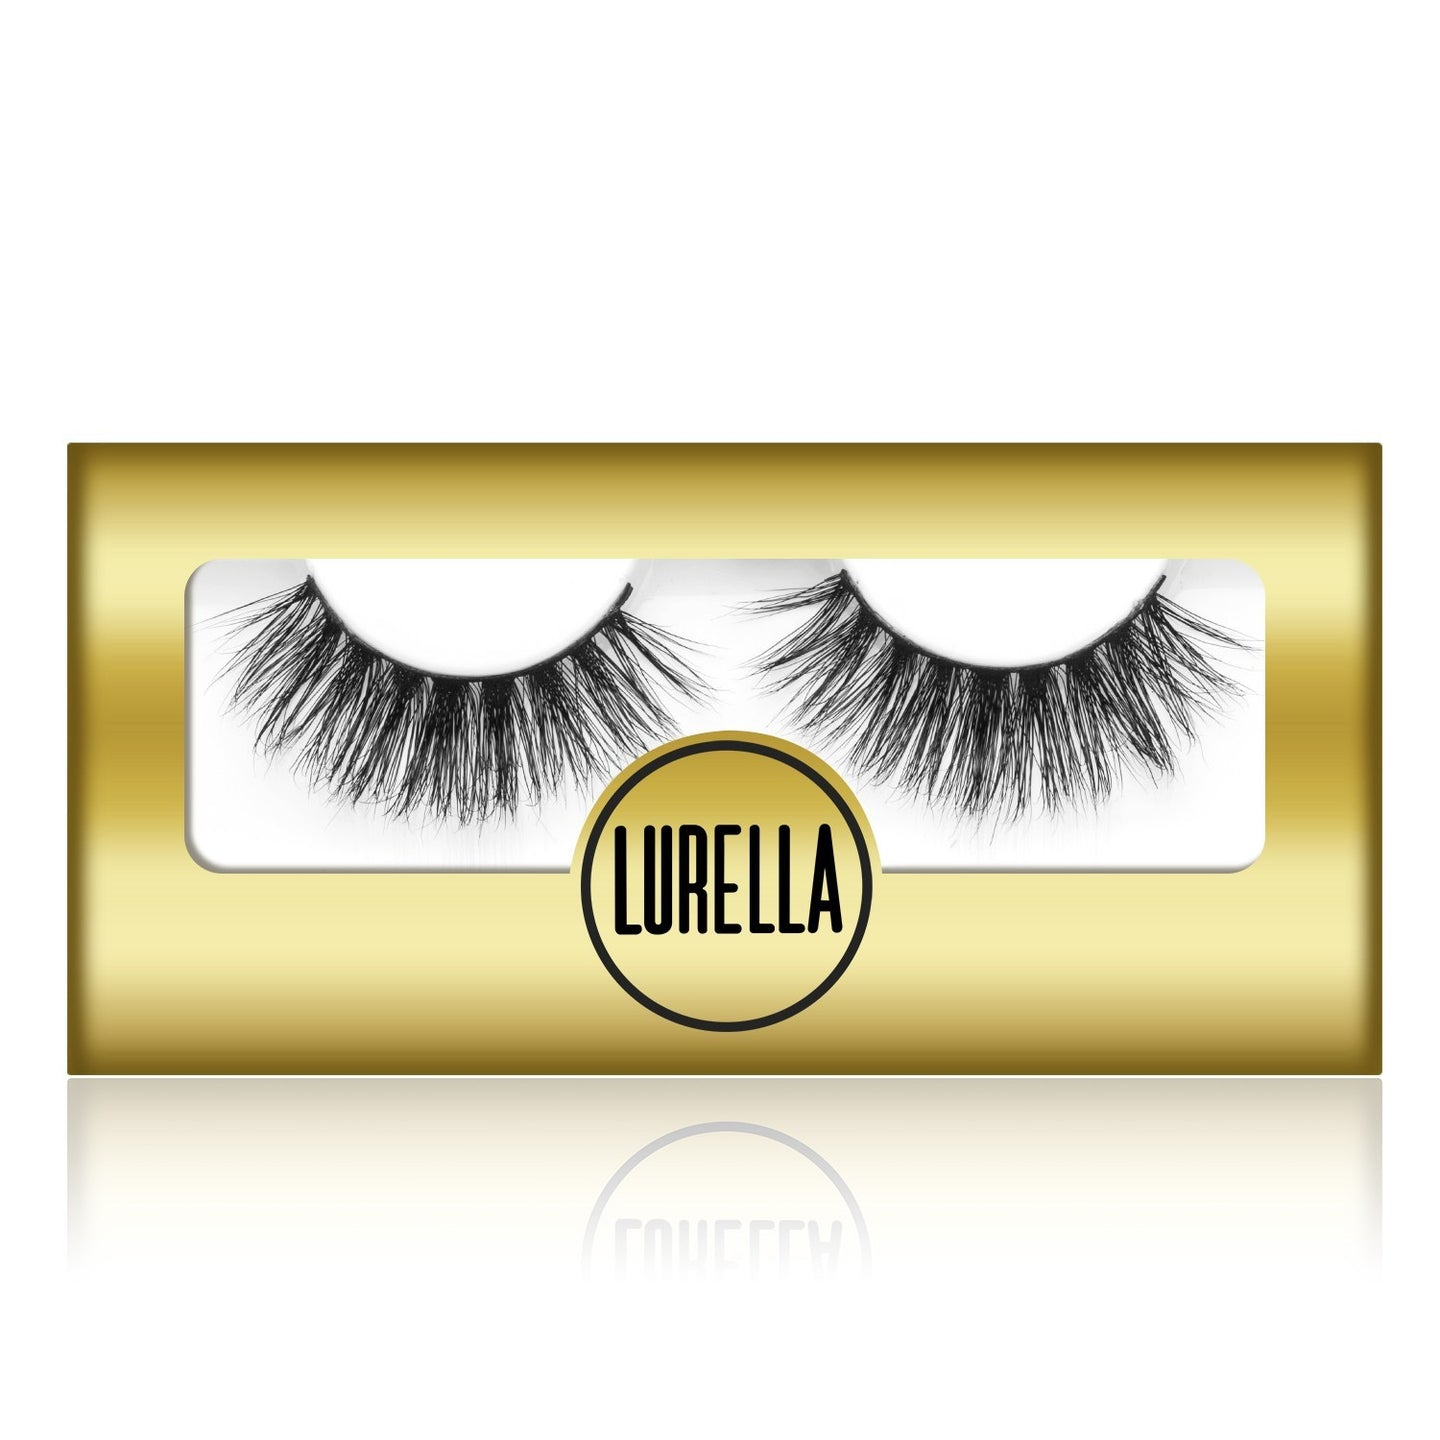 Lurella 3D Mink Lashes (Queen)